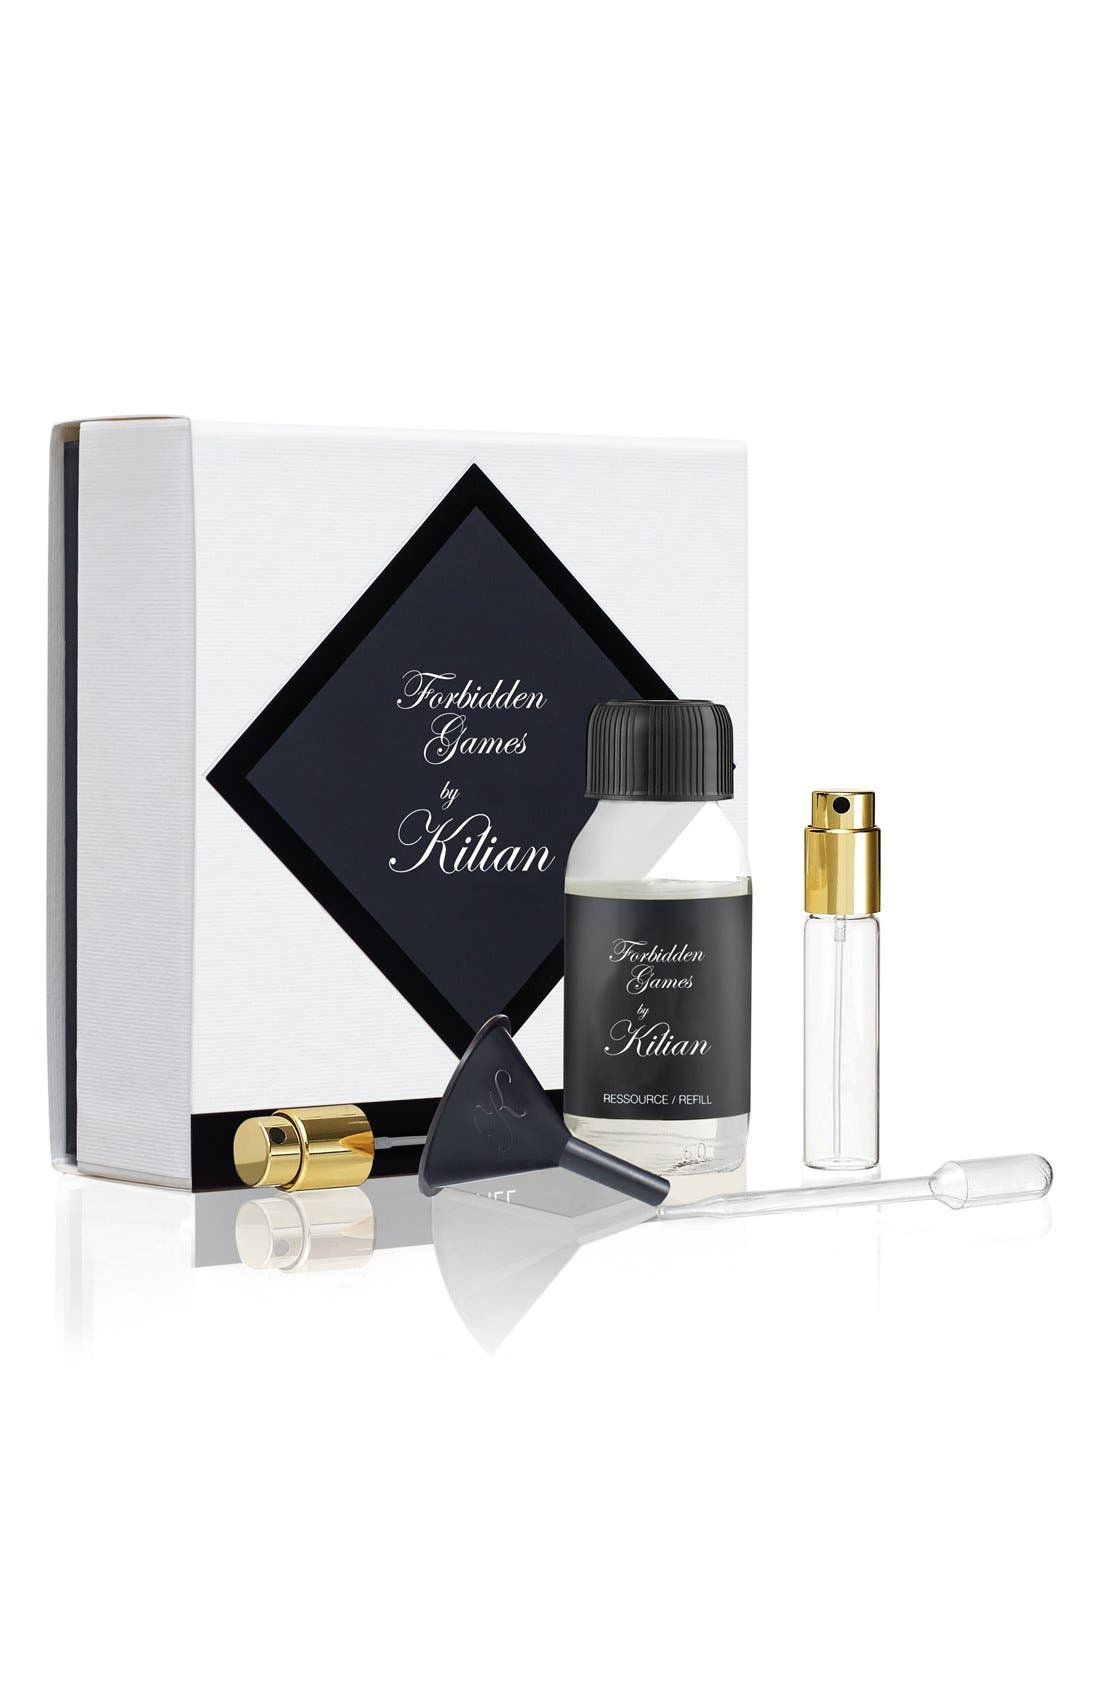 Kilian 'In the Garden of Good and Evil - Forbidden Games' Fragrance Set